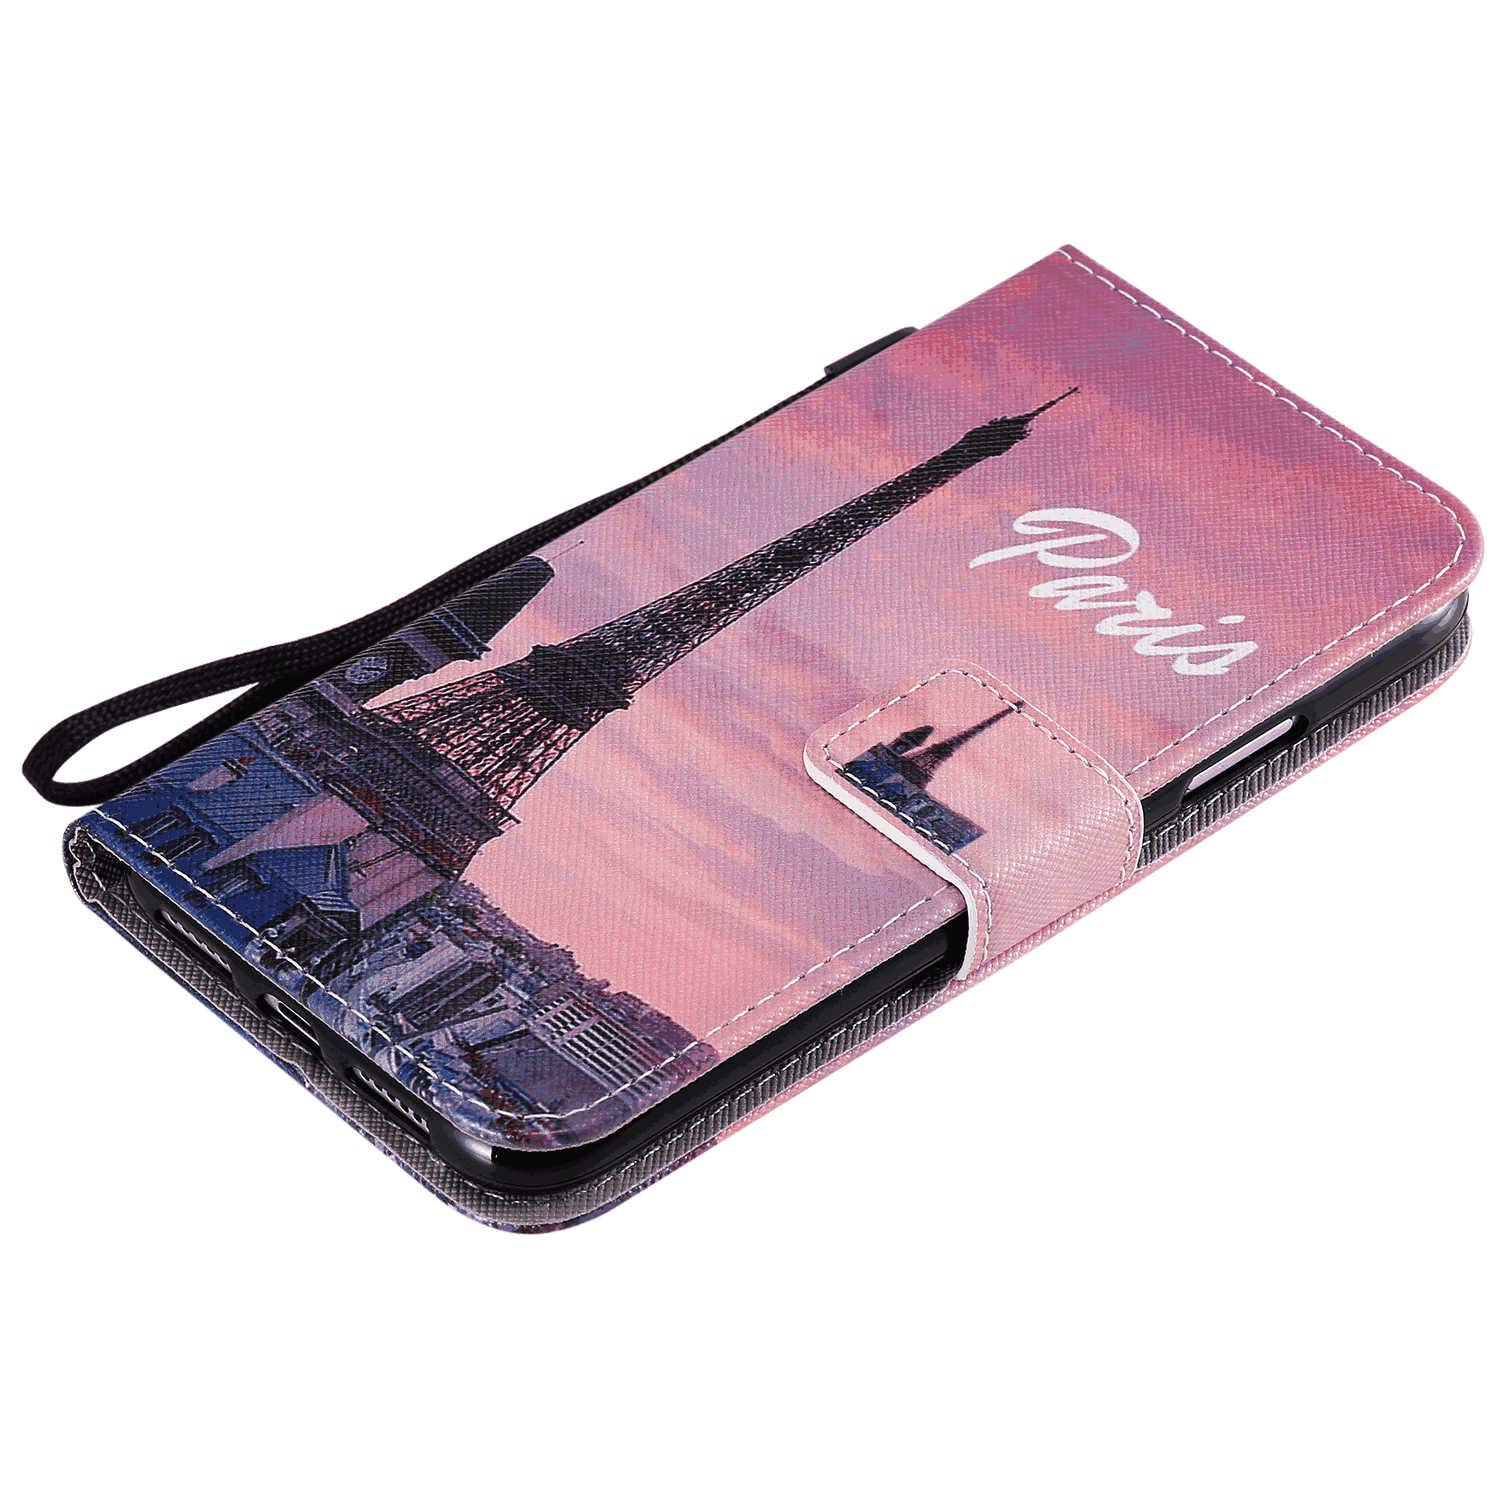 Cover for iPhone X Leather Kickstand Luxury Business Cell Phone Cover Card Holders with Free Waterproof-Bag iPhone X Flip Case